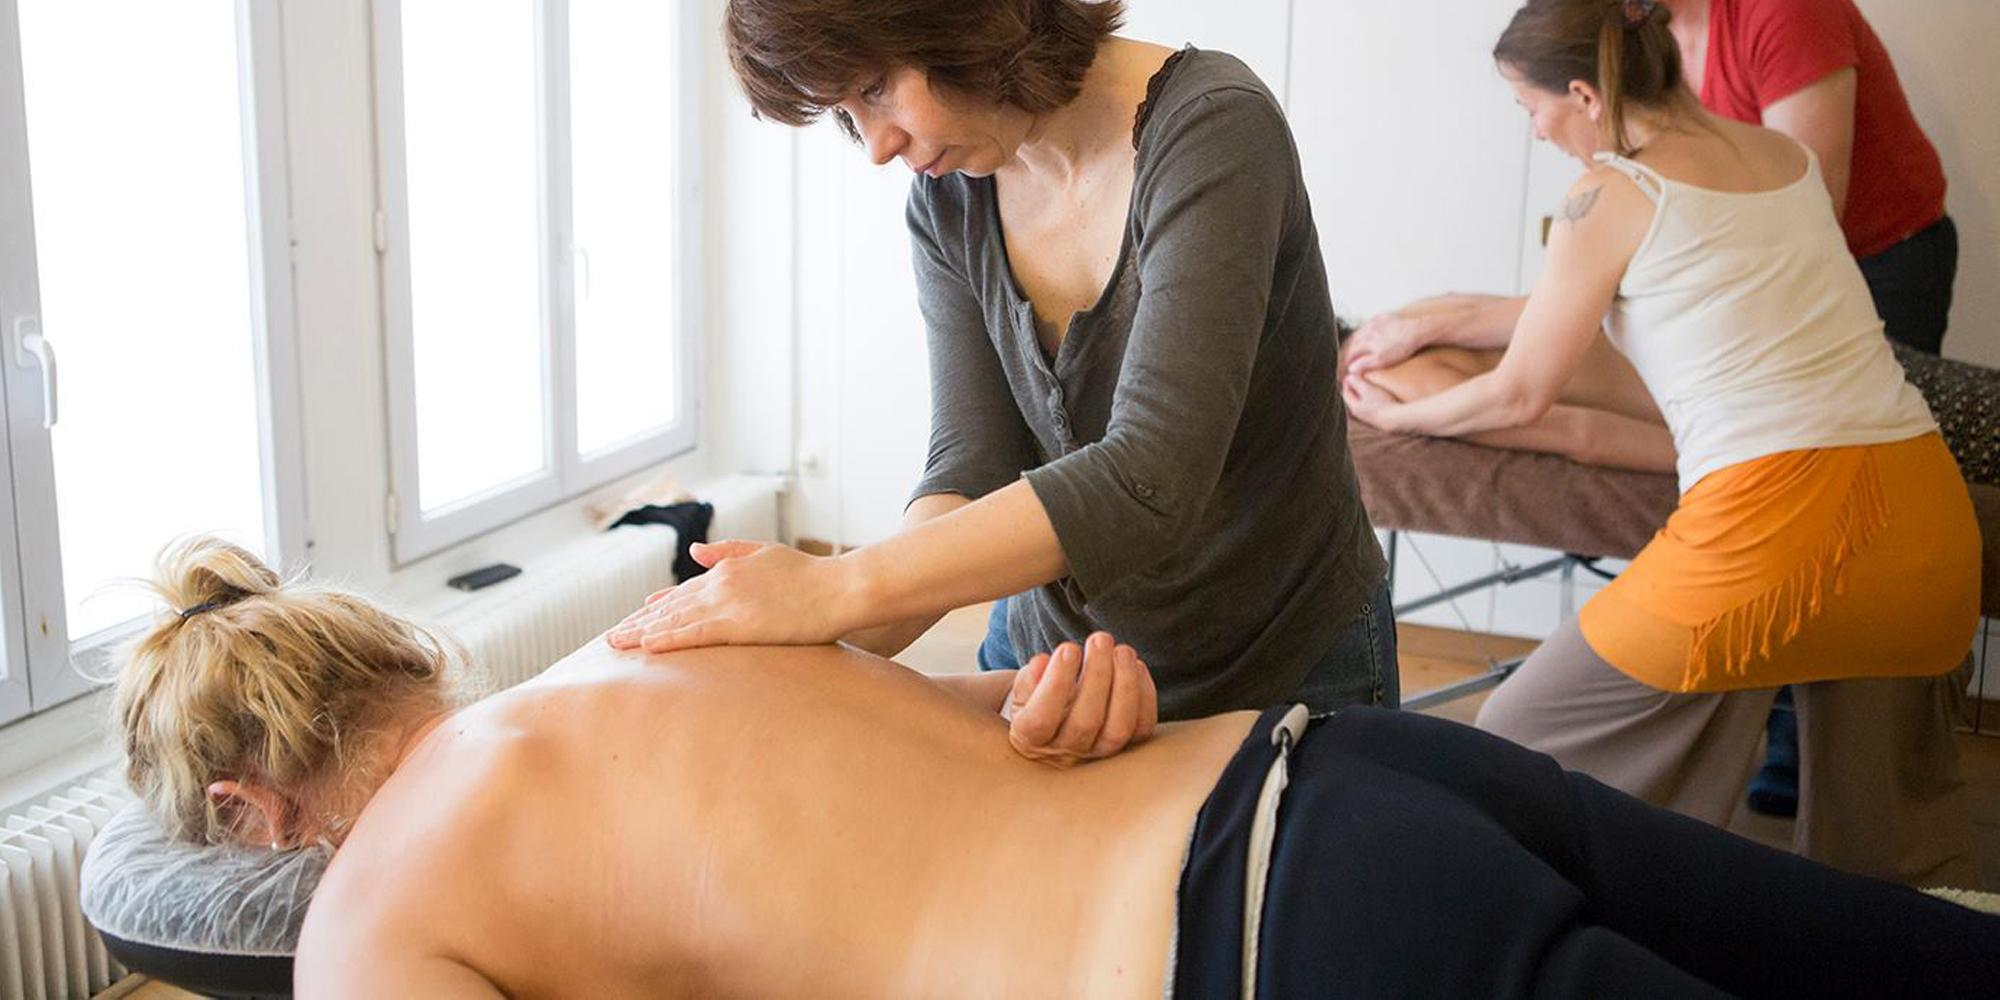 Centre de formation de massage à Paris